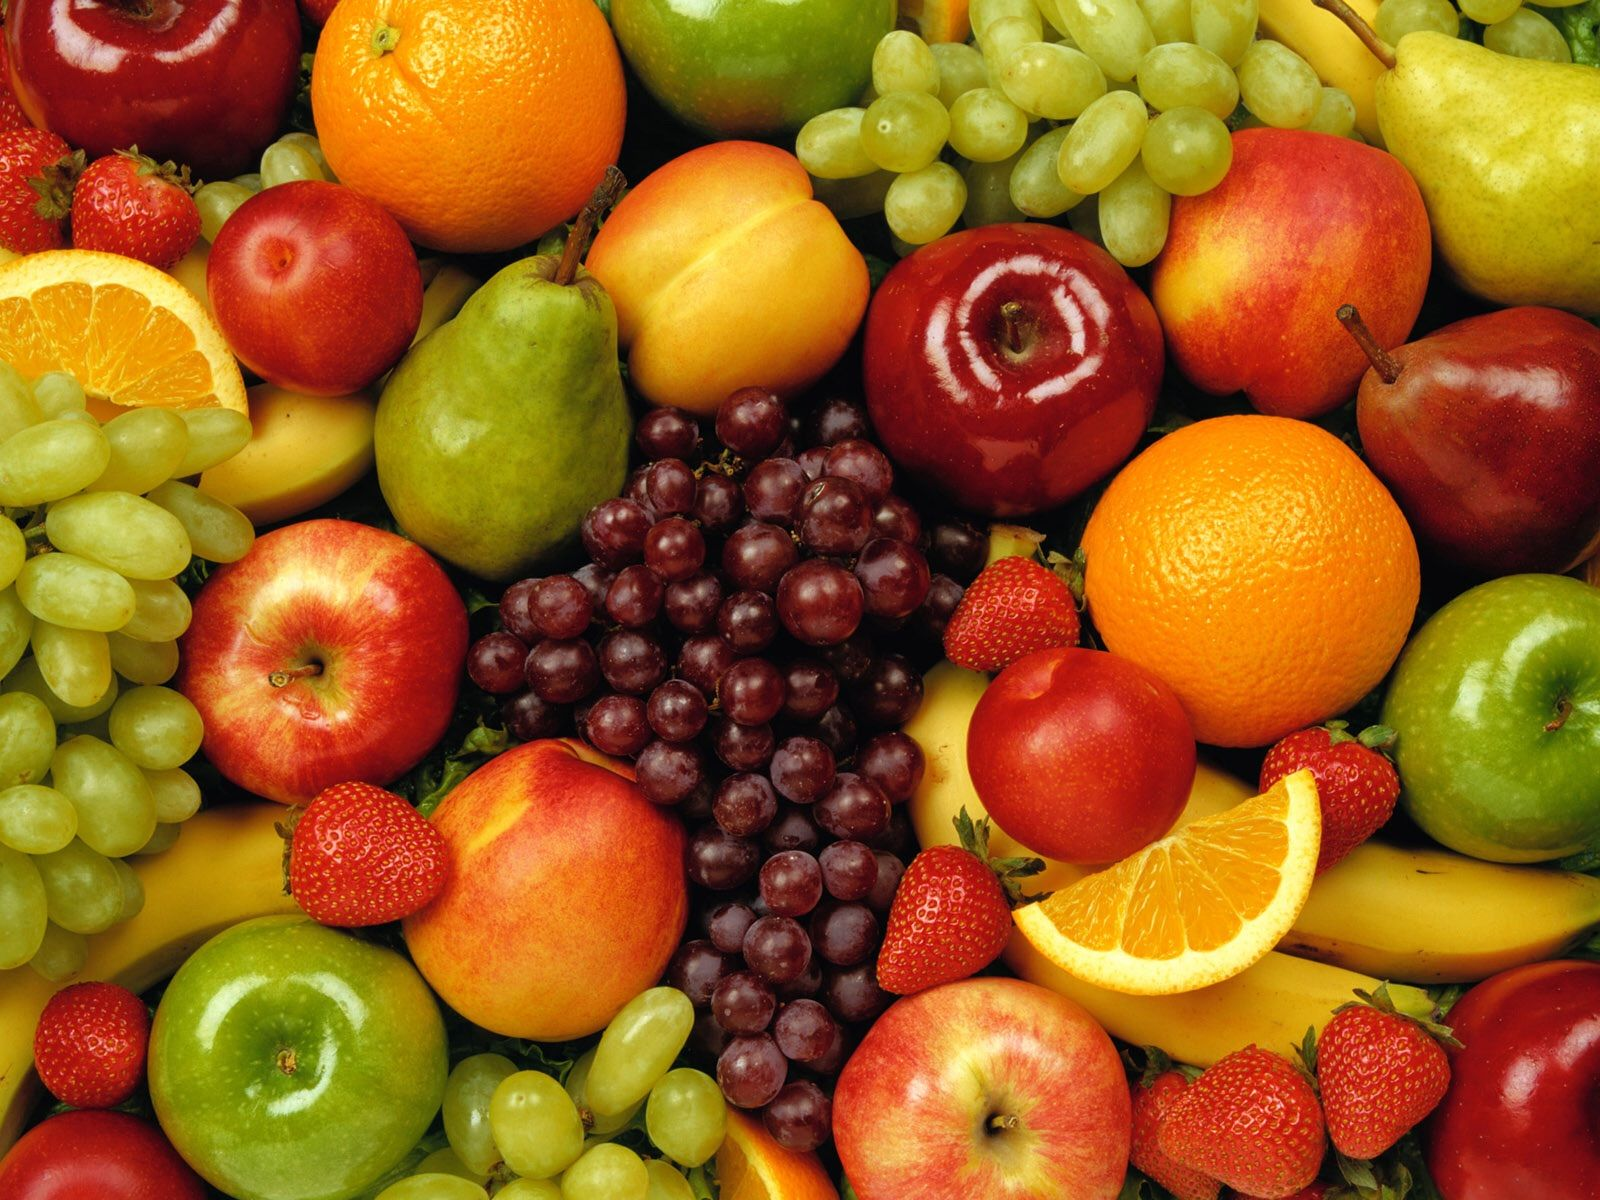 Pin by michael bertagna on fruits 2 cups a day or more